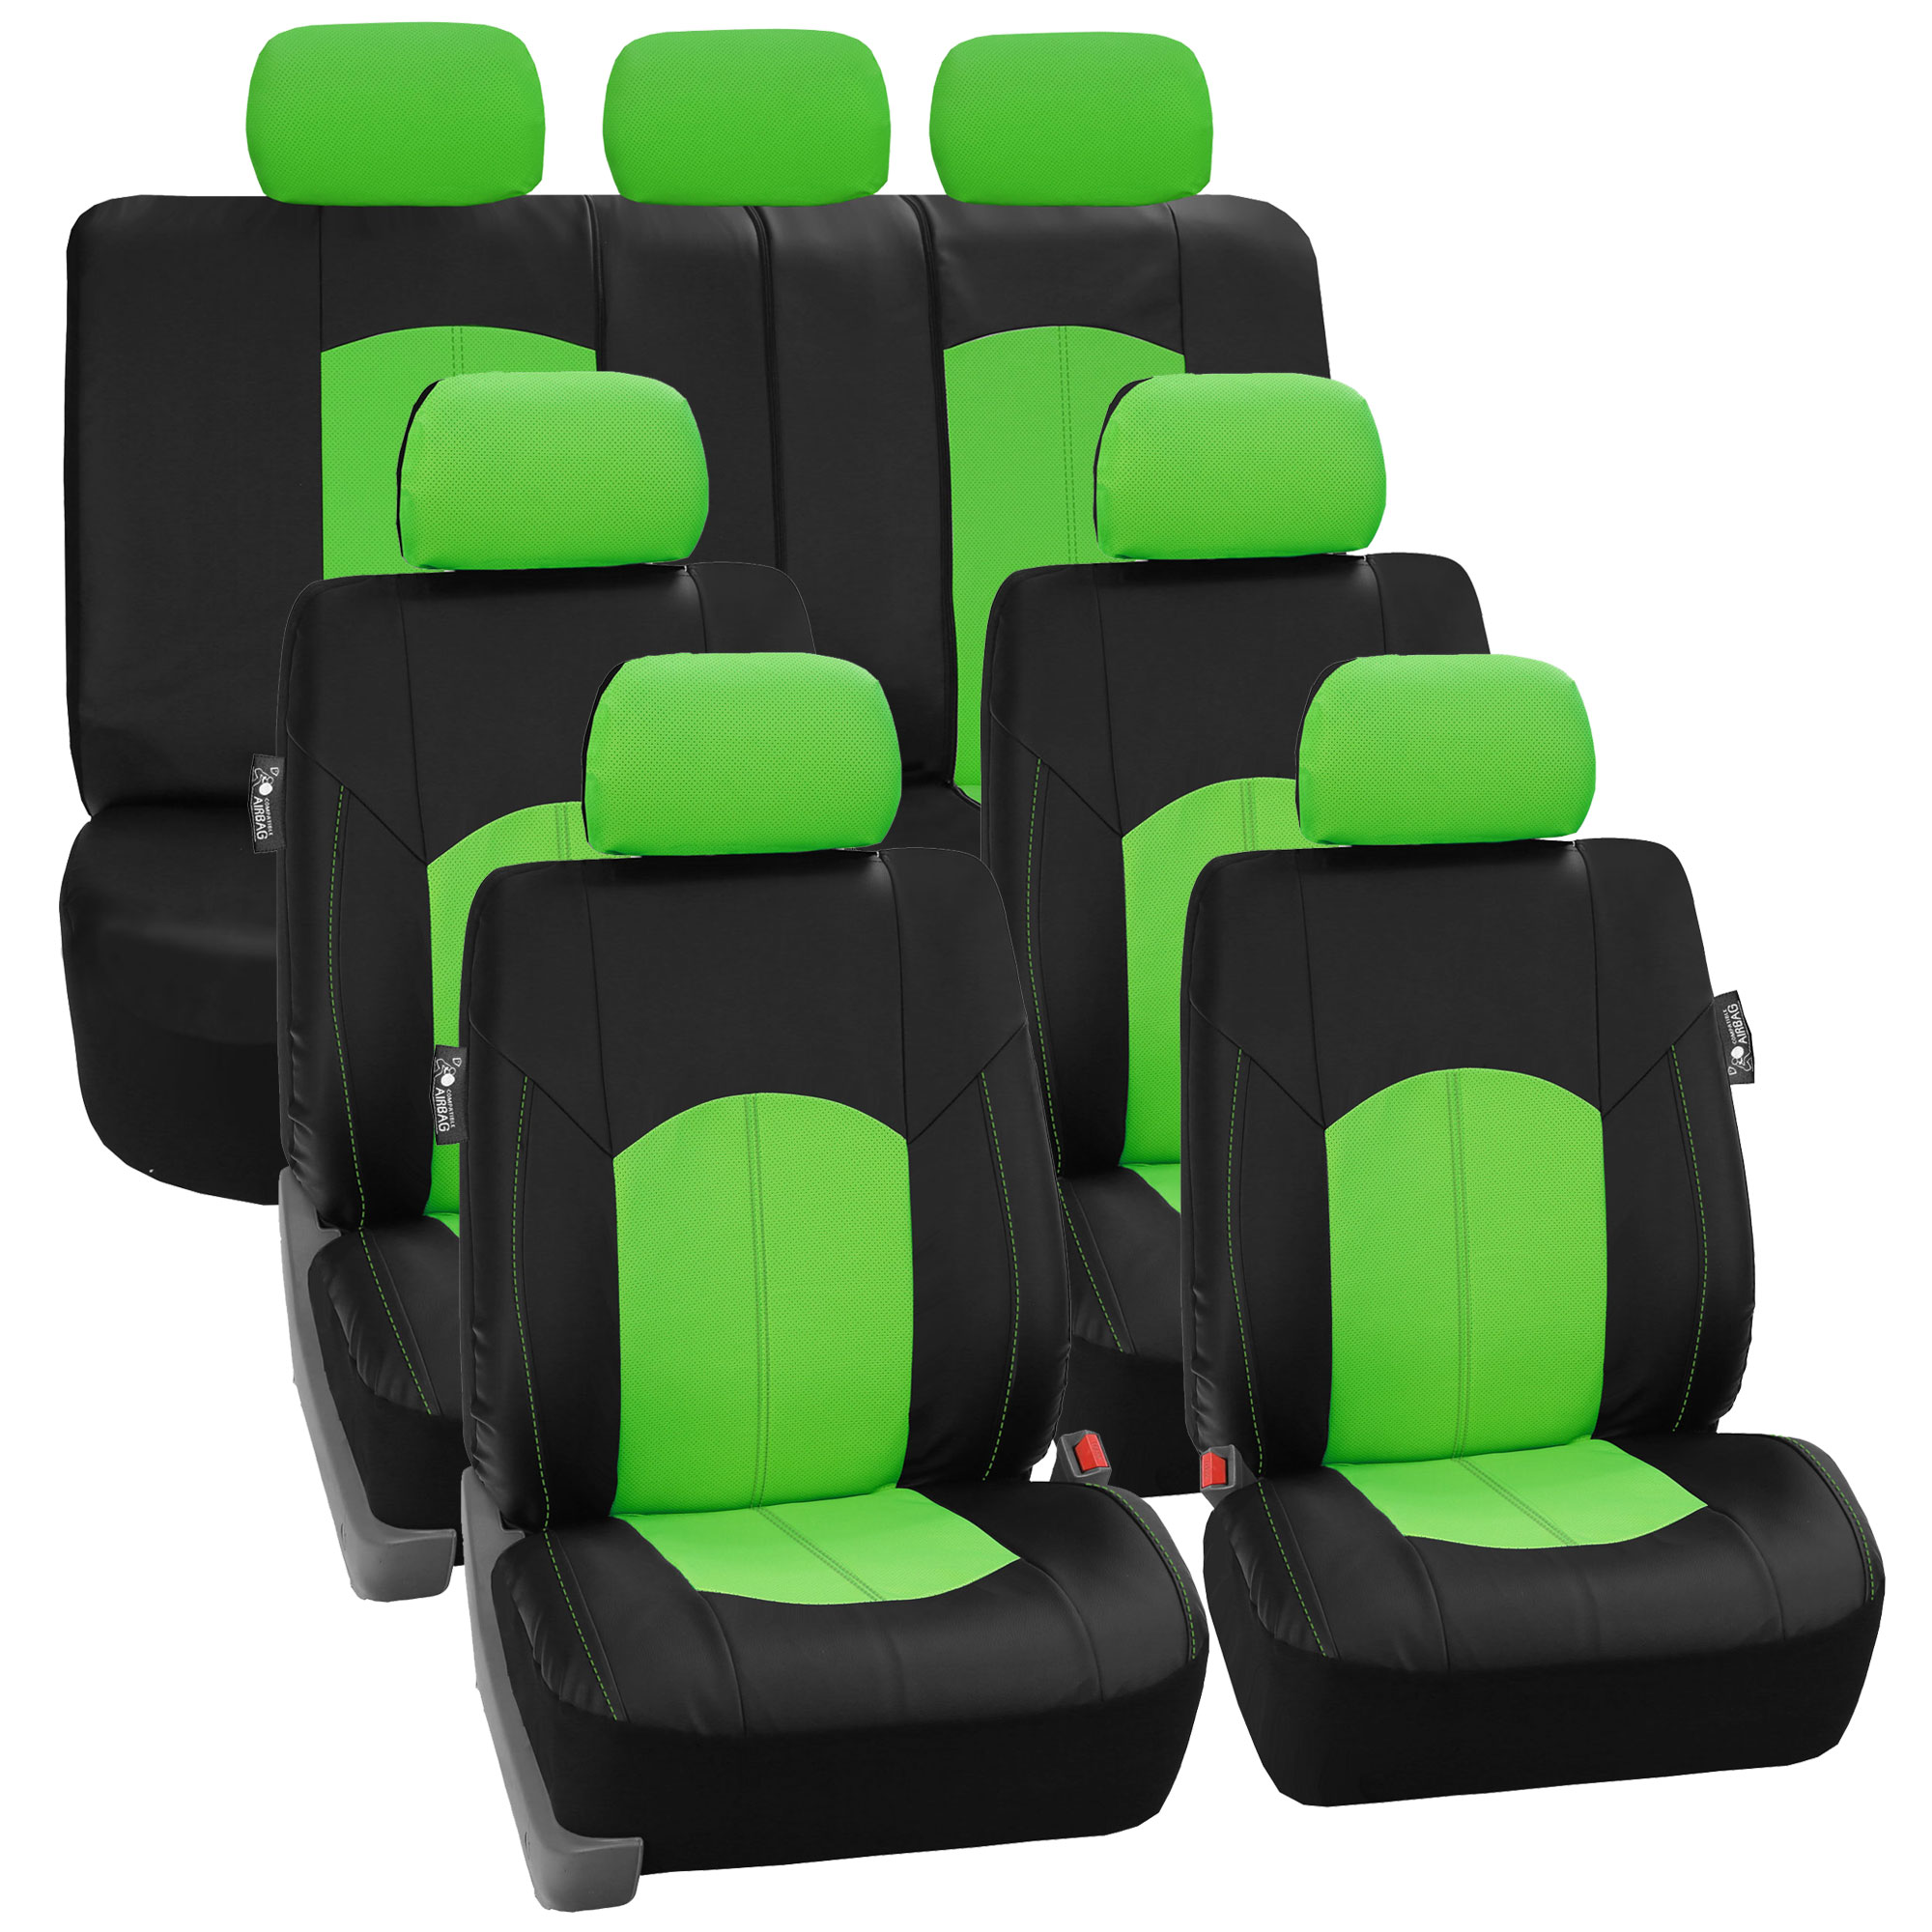 FH Group, Perforated Leather 3 Row Full Set Seat Covers for 7 Seaters SUV Van, 8 Colors